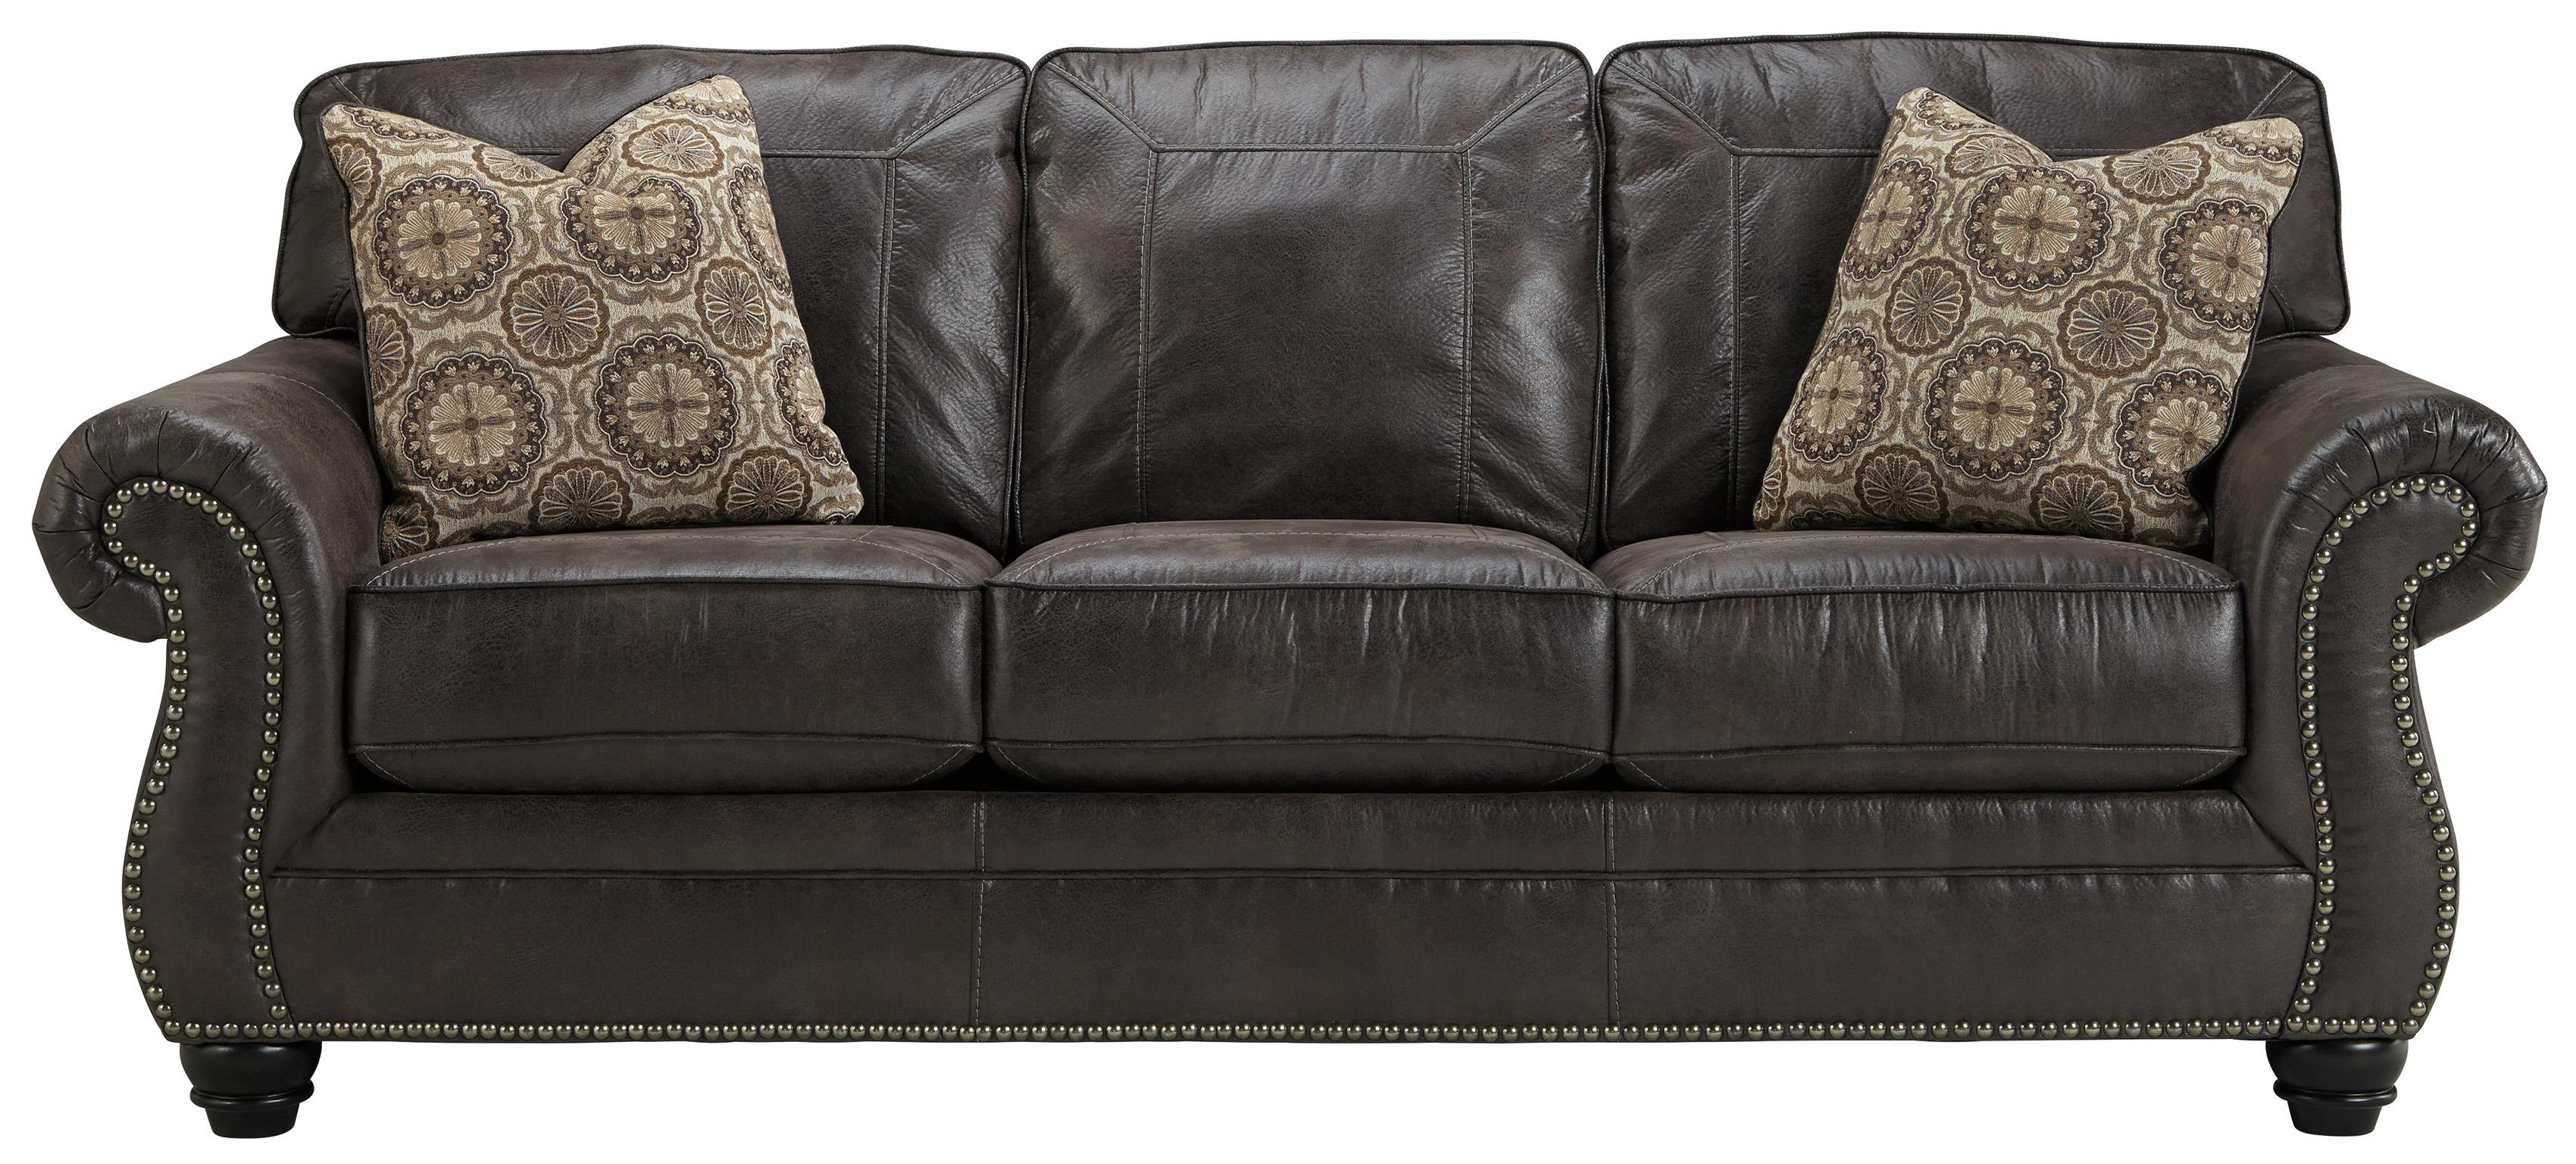 Breville Sofa by Benchcraft at Walker's Furniture